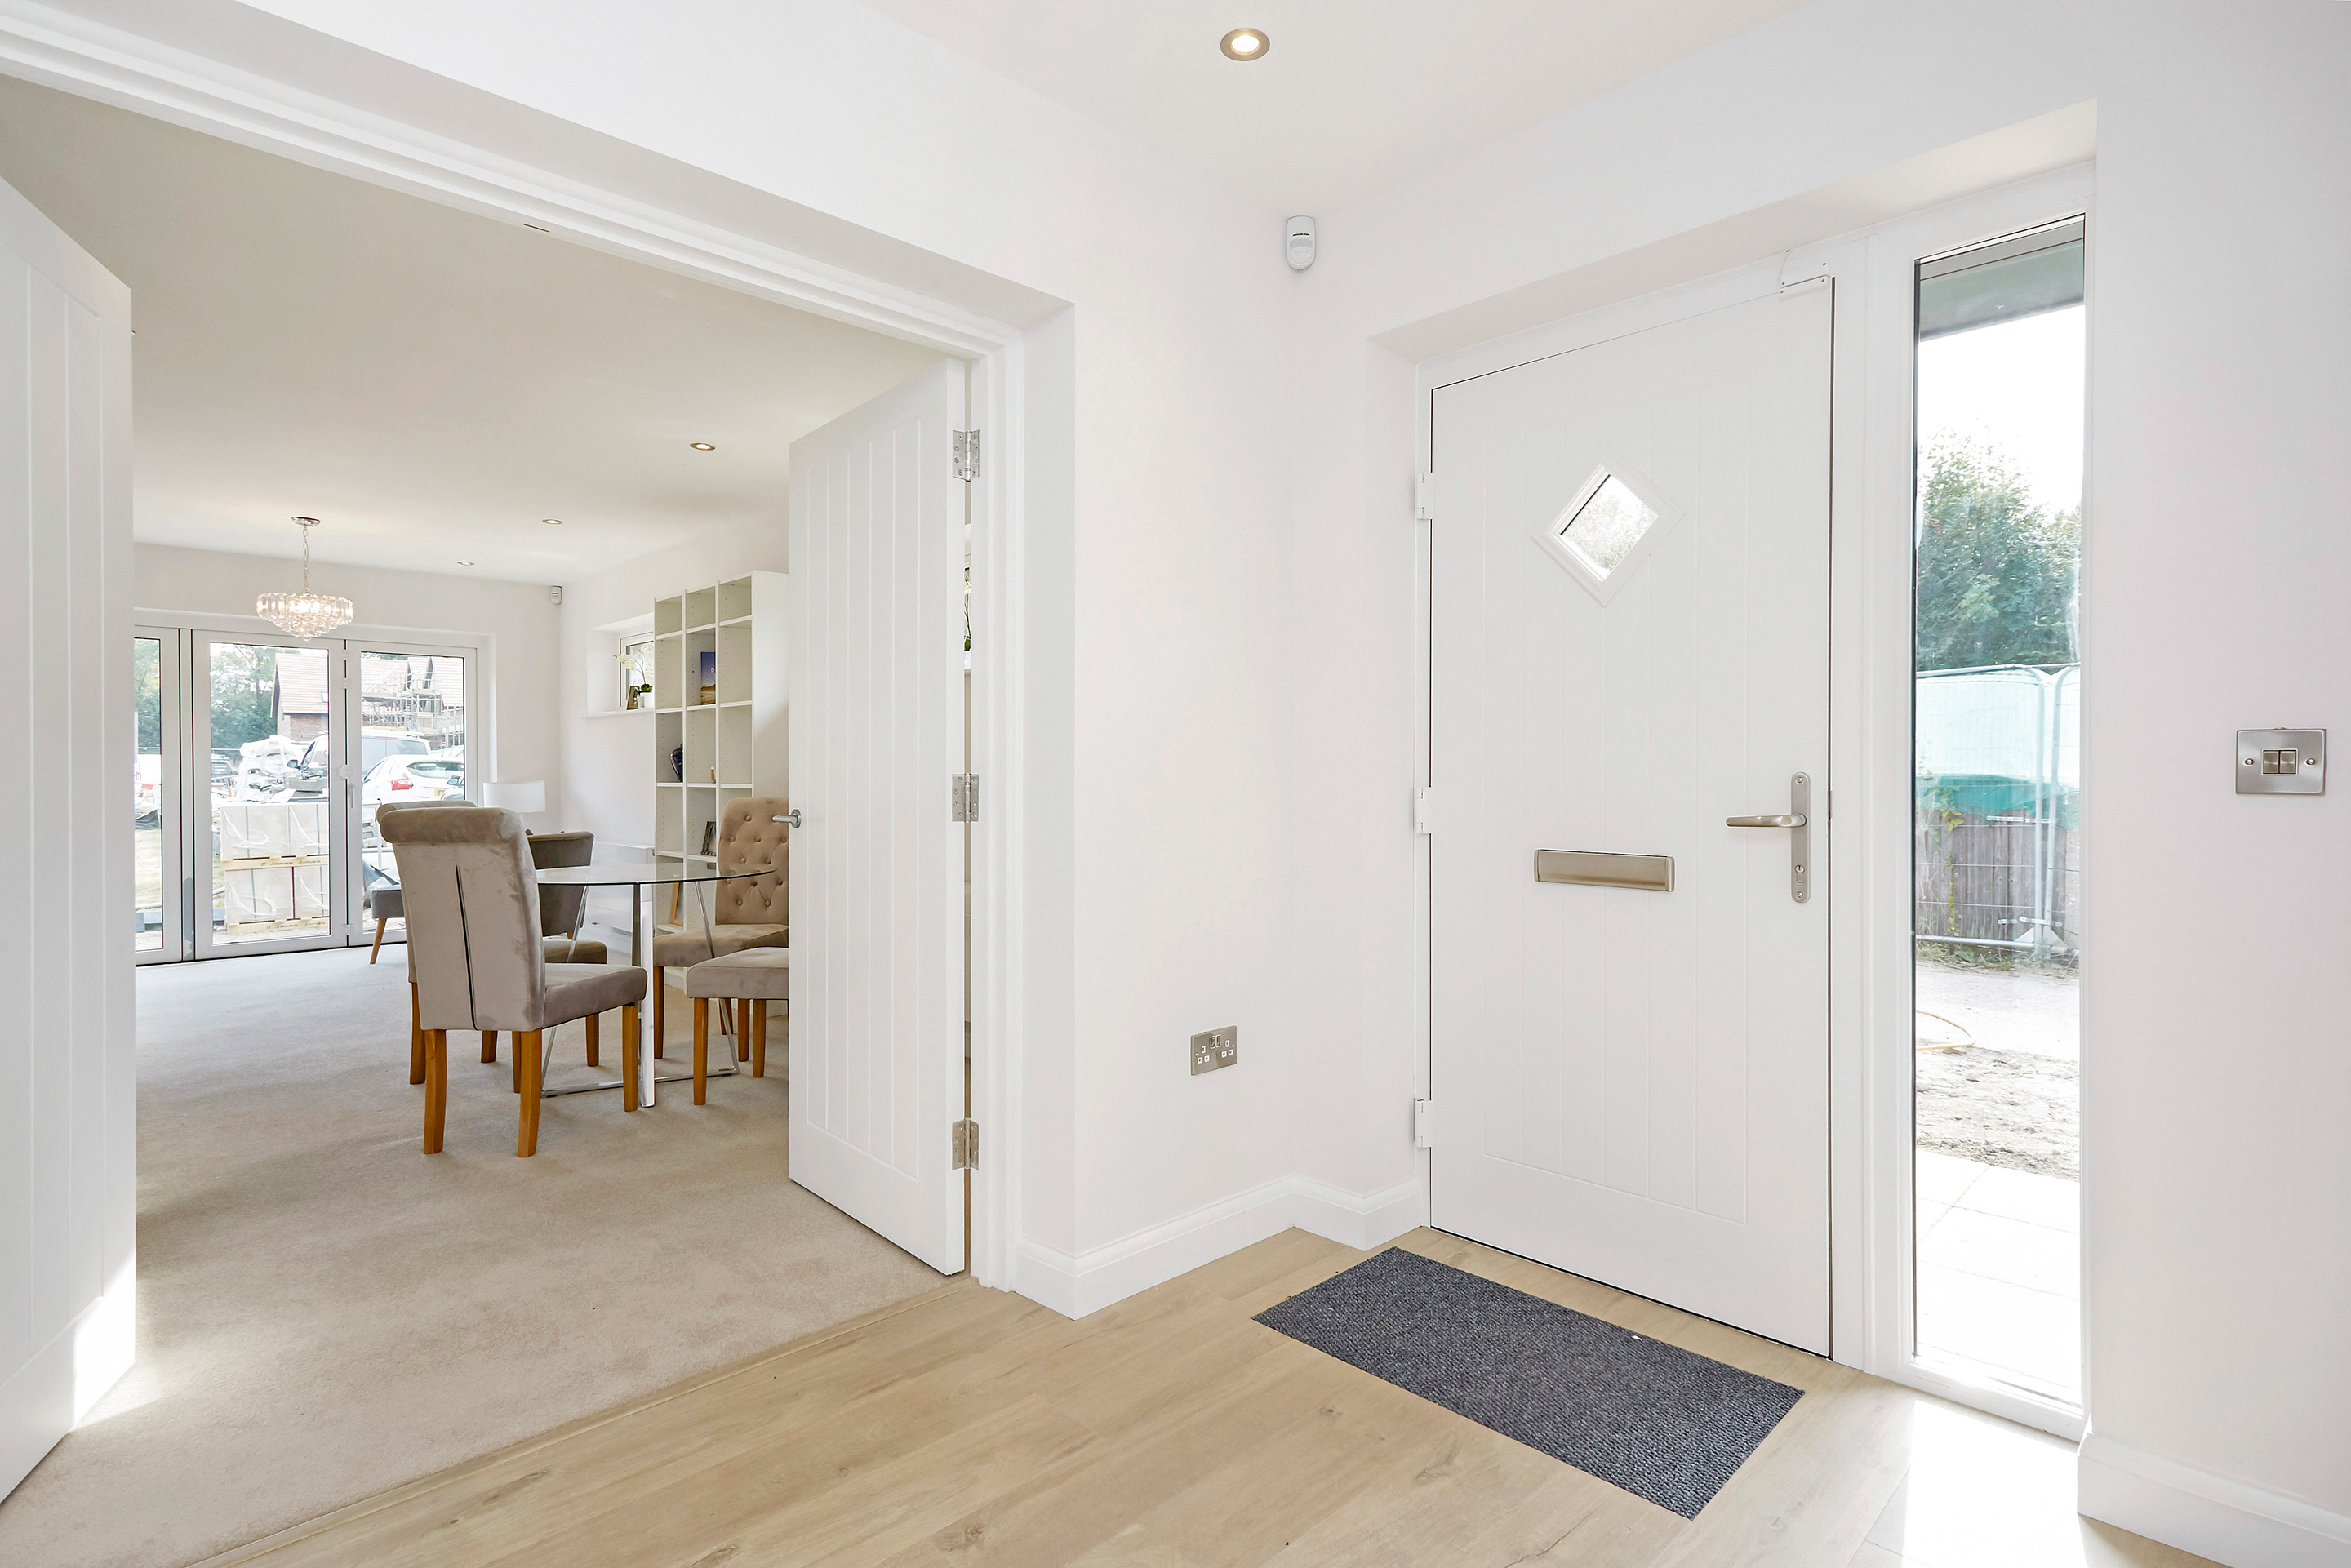 A bright and inviting entrance hall with wood flooring and large double doors opening onto a large dining area.